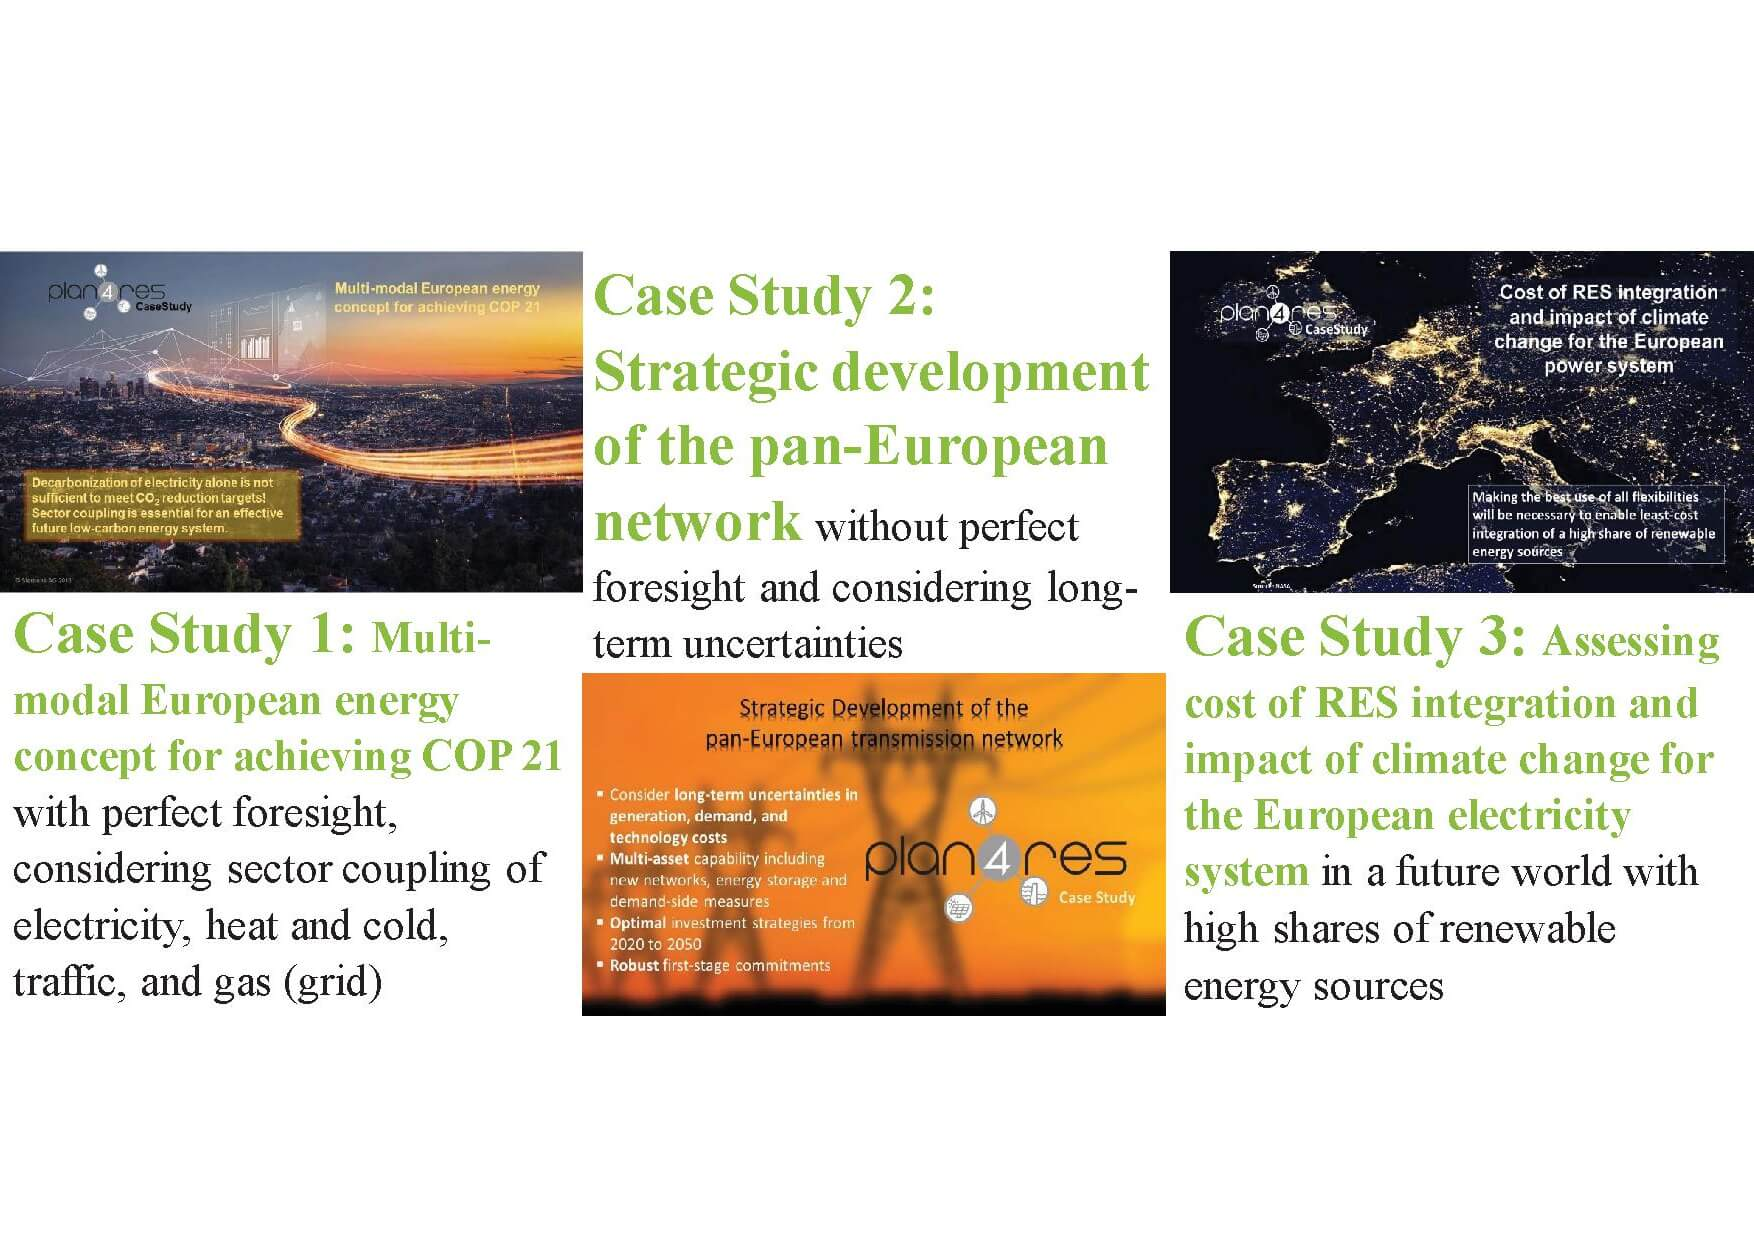 Case Study Summaries